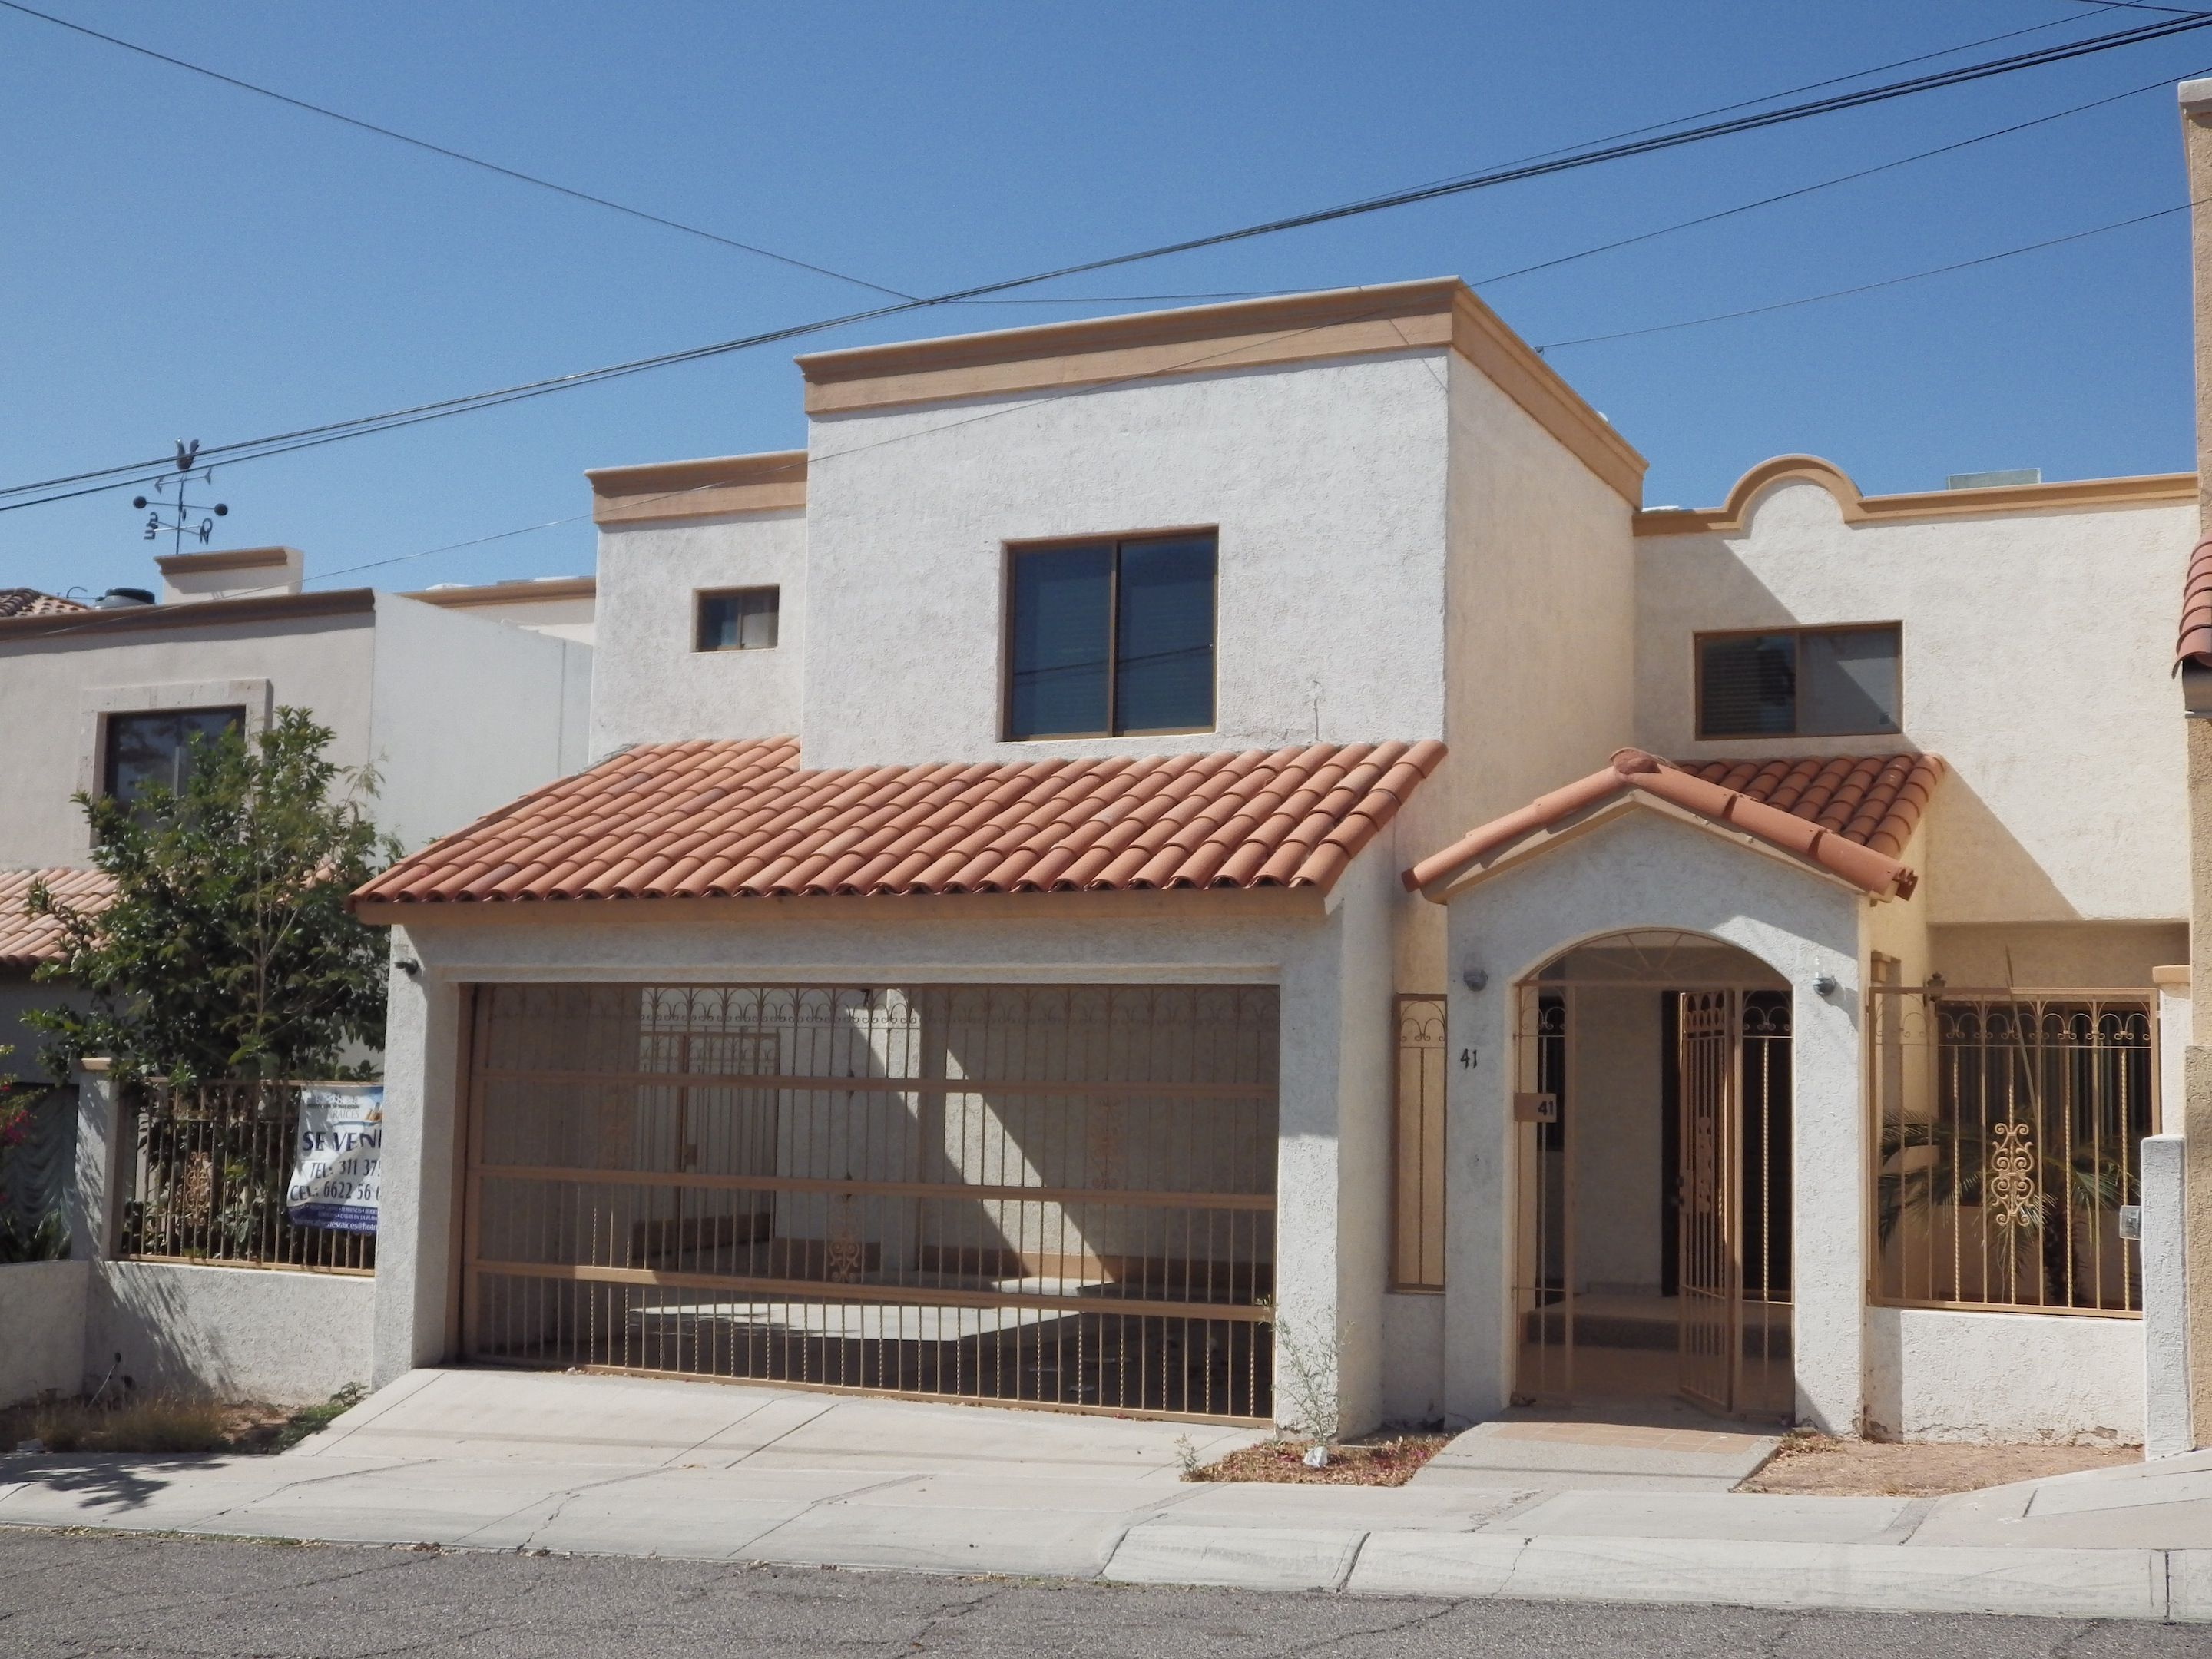 Cocheras on pinterest search tags and html for Casas coloniales interiores